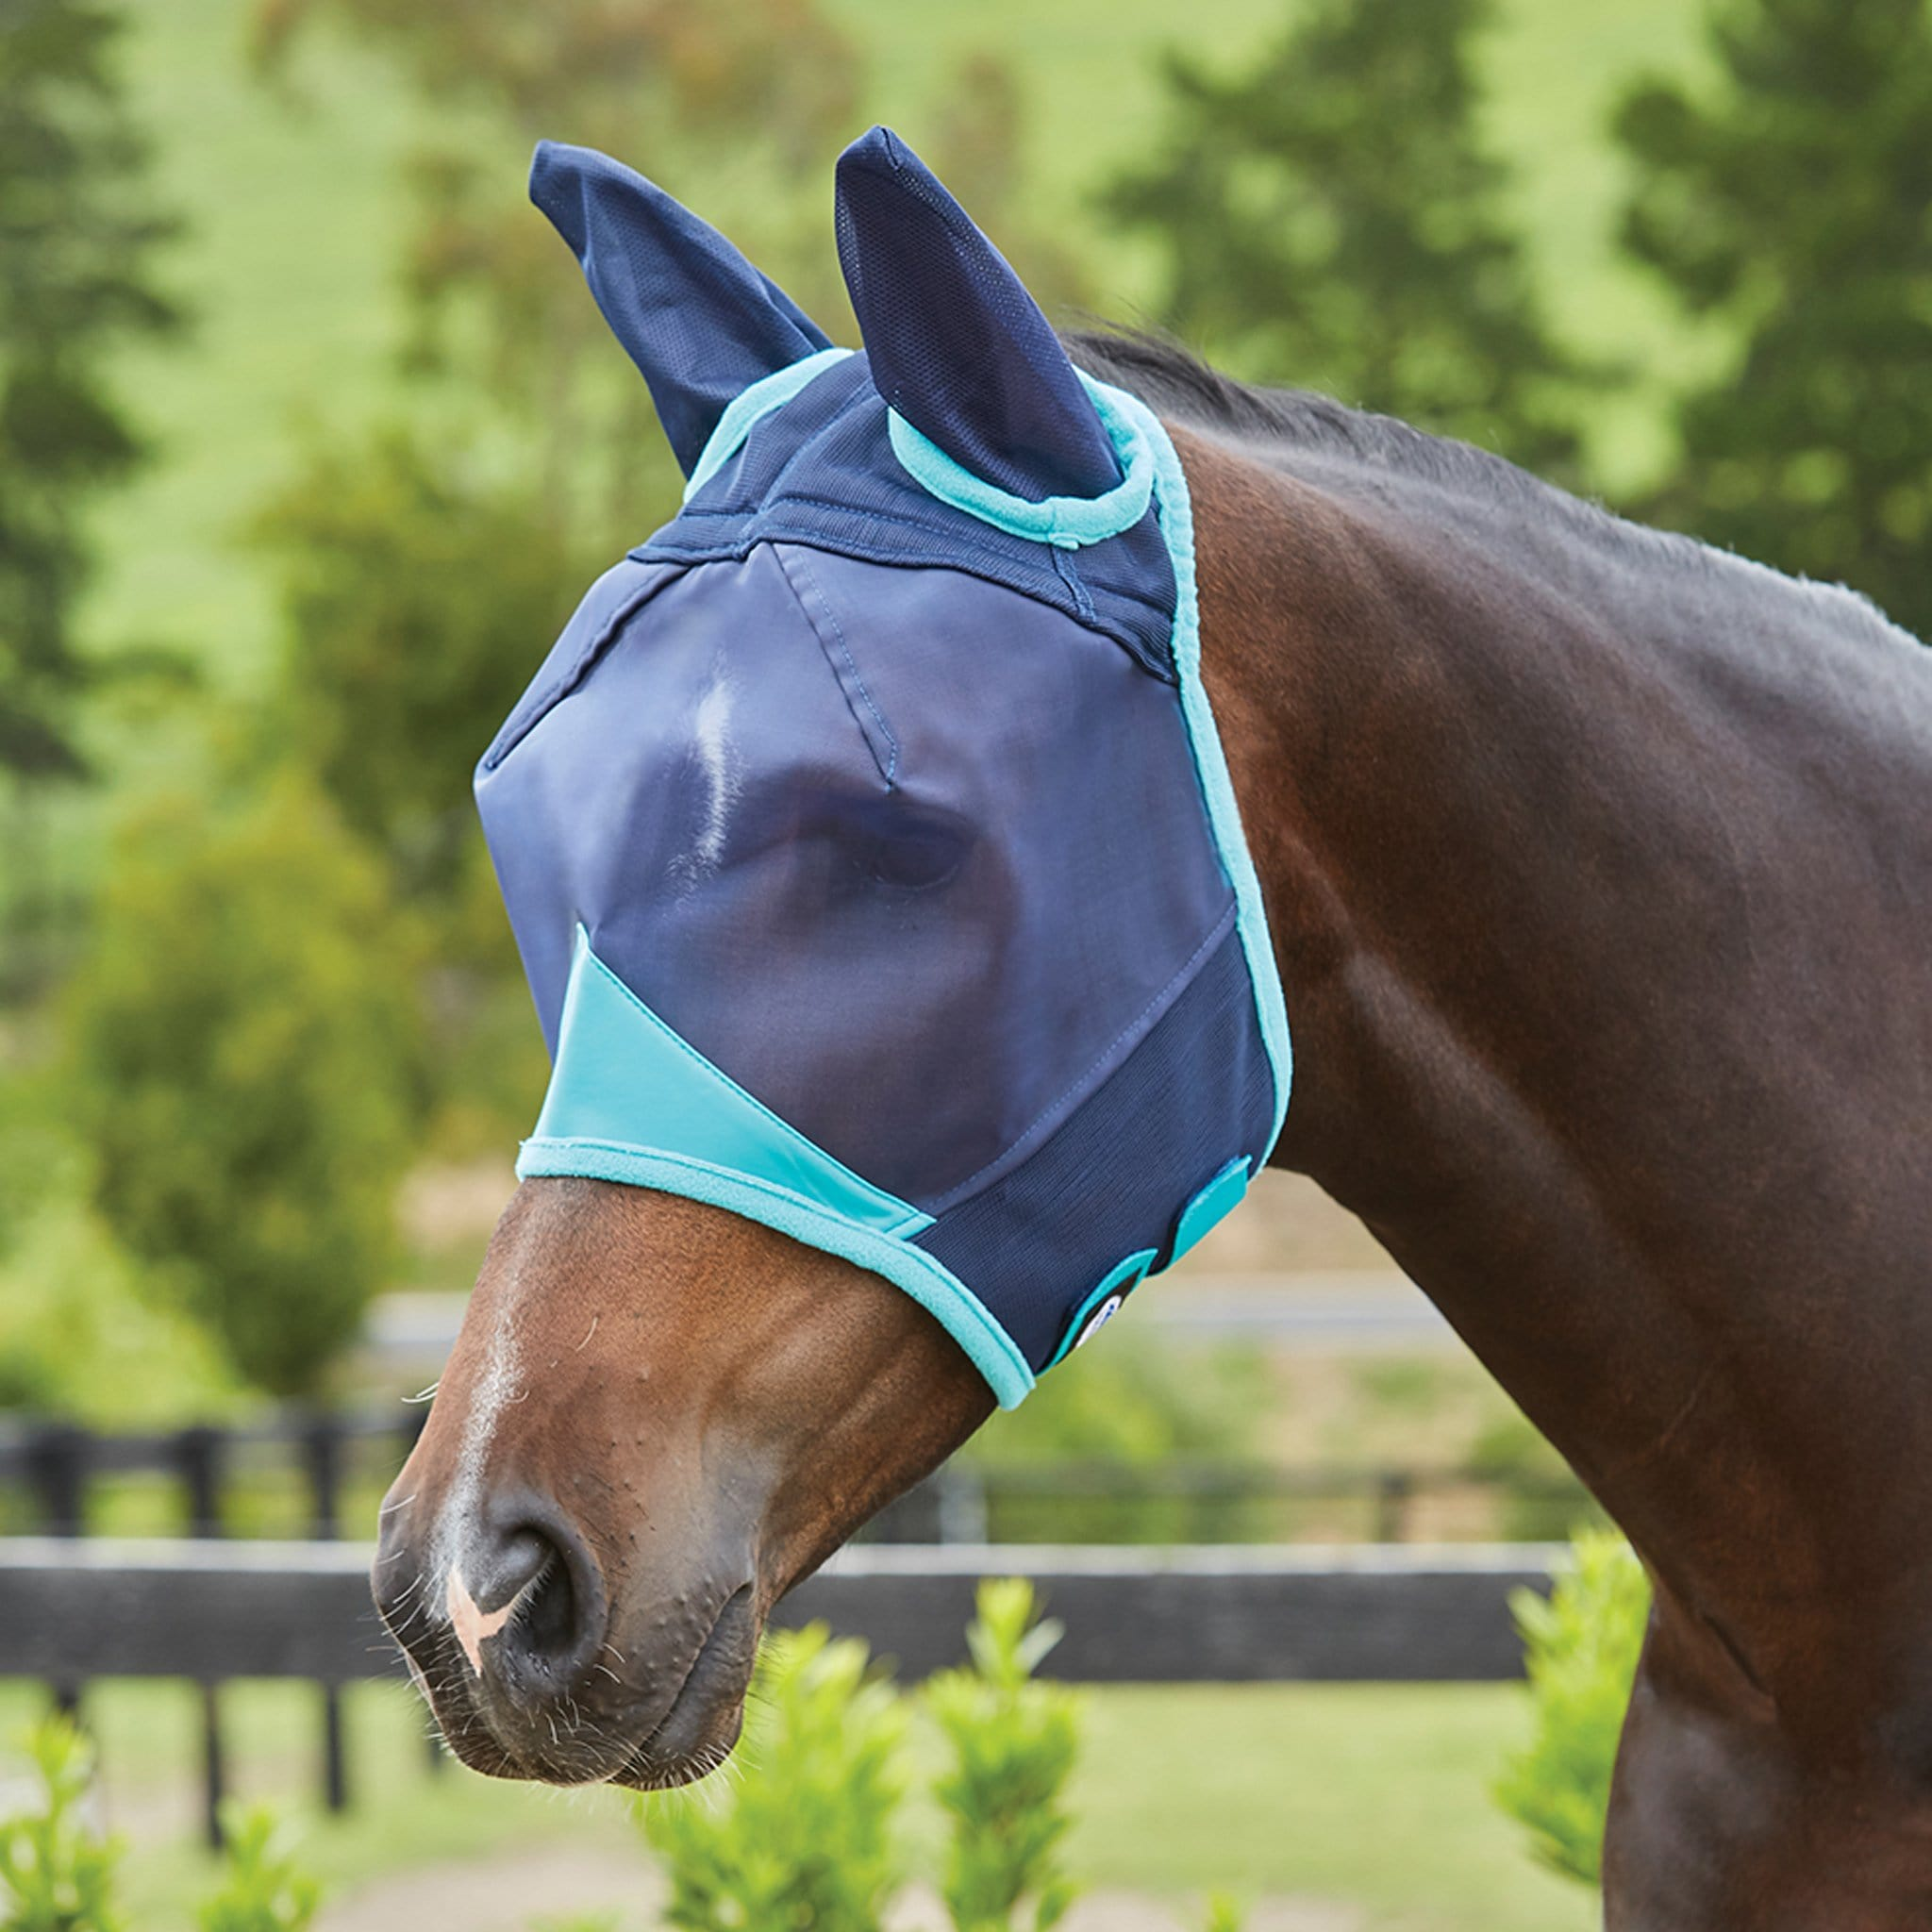 Weatherbeeta Fine Mesh Fly Mask With Ears 1003159001 Navy and Turquoise